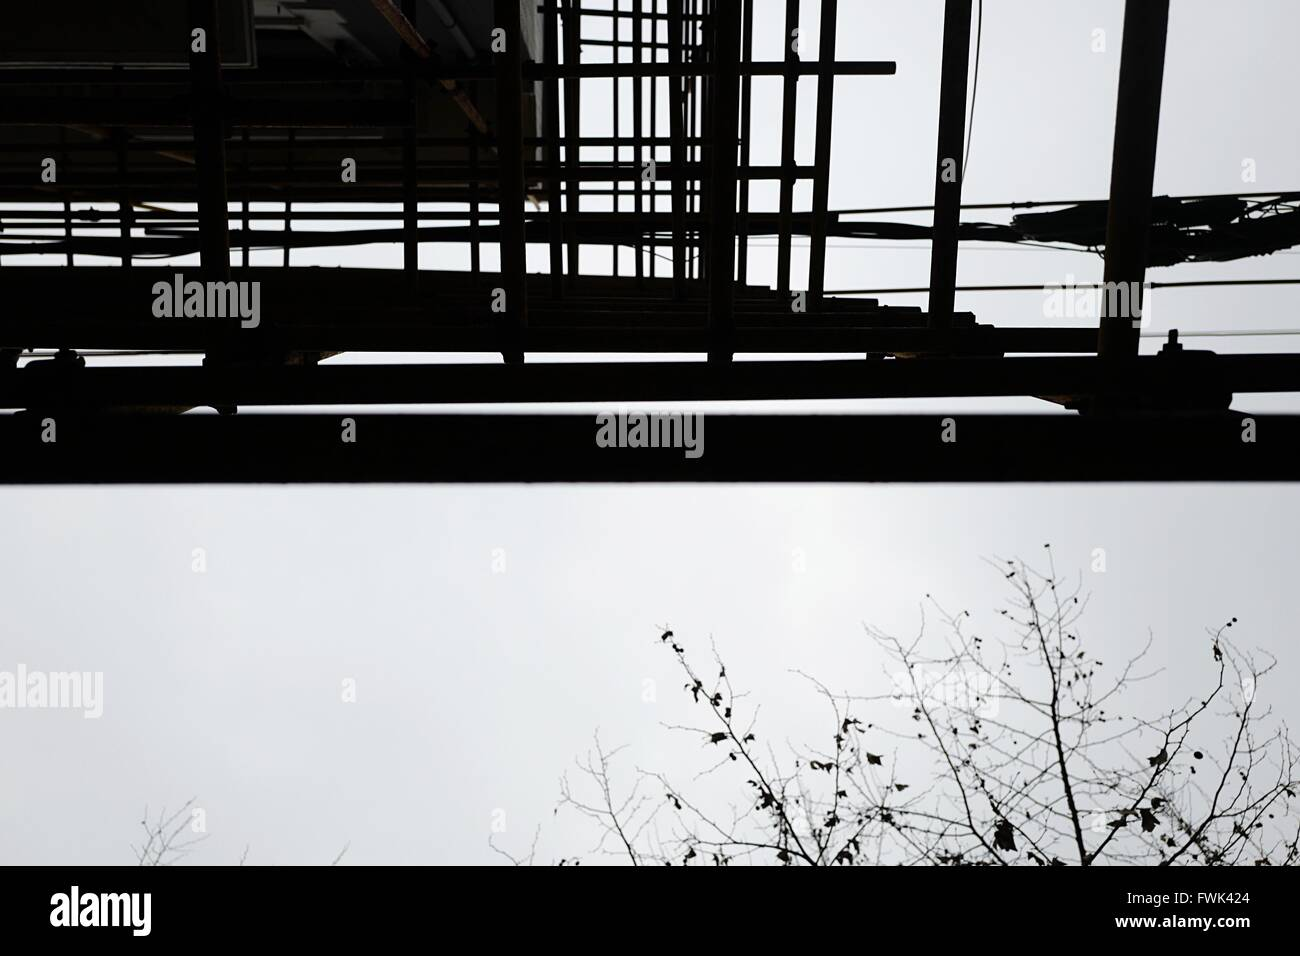 Low Angle View Of Scaffolding Against Sky - Stock Image